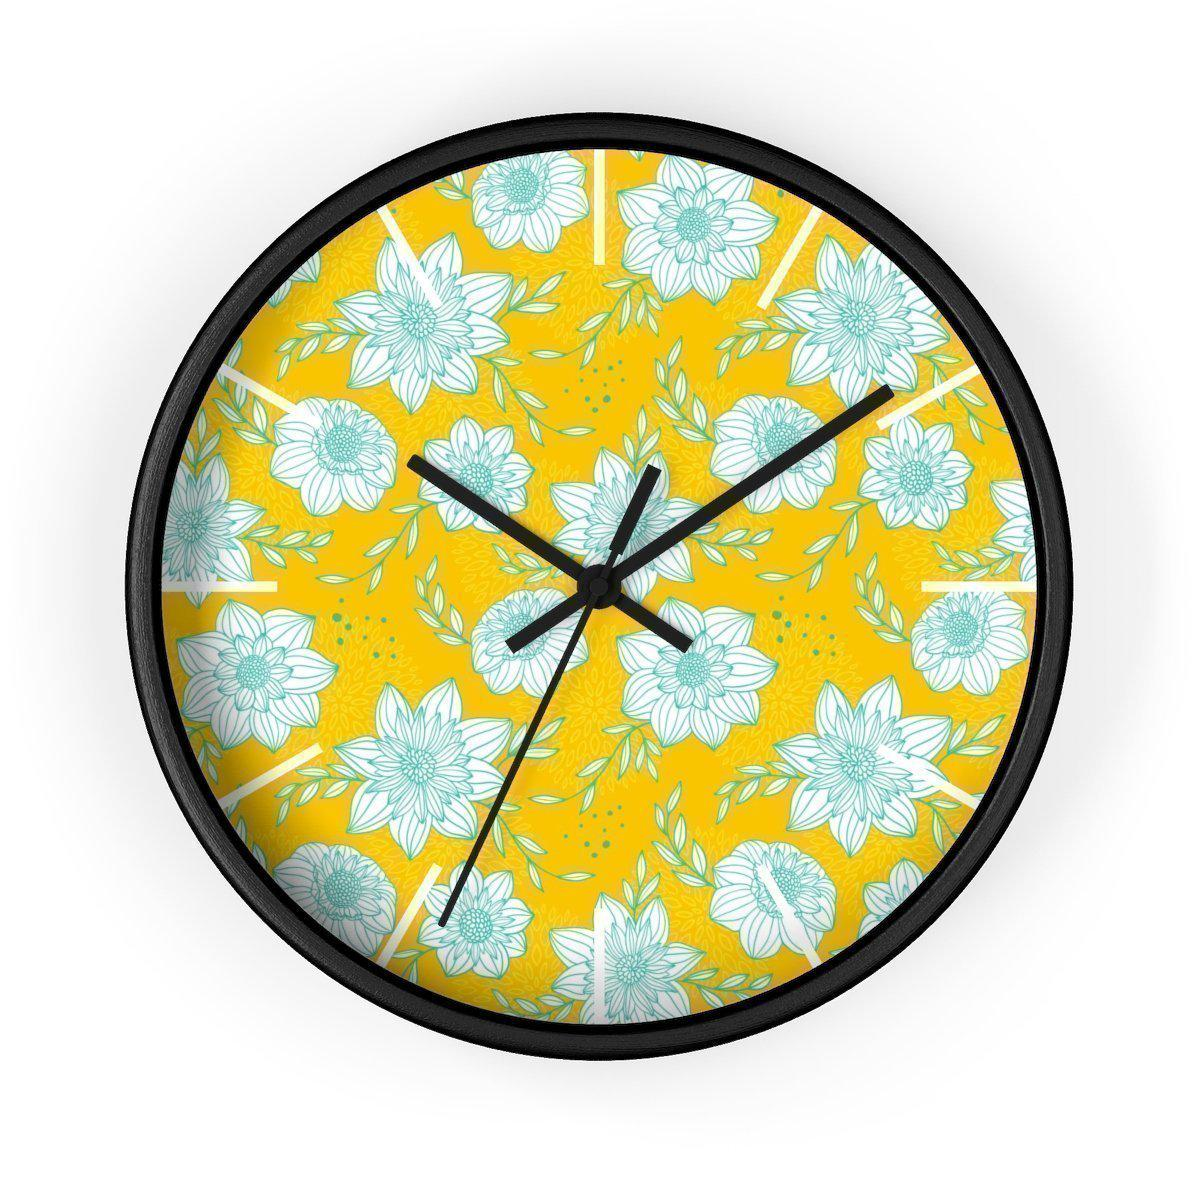 Maison d'Elite Floral Wall clock-Home Décor › Accents › Wall Decor › Clocks & Sculptures-Maison d'Elite-Black-Black-Très Elite